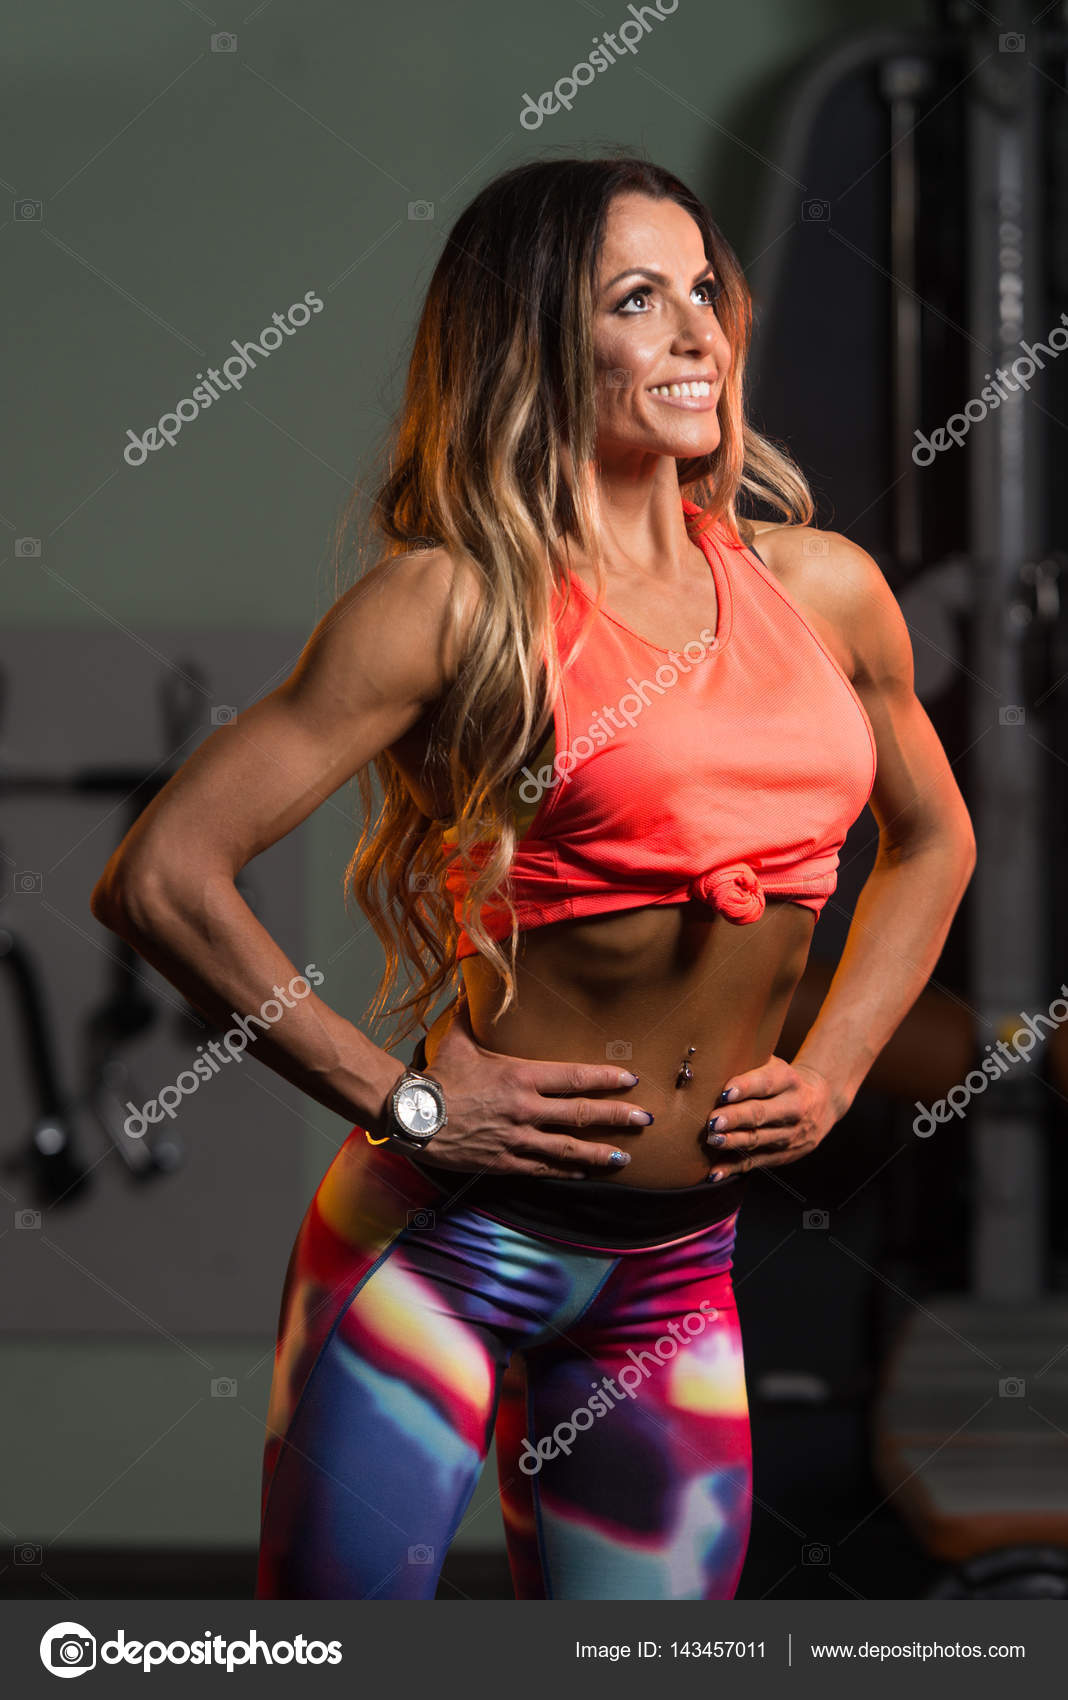 Sexy Fitness Woman Posing In Gym Stock Photo C Ibrak 143457011 It involves looking at your body as a holistic system in which all of its parts are related. sexy fitness woman posing in gym stock photo c ibrak 143457011